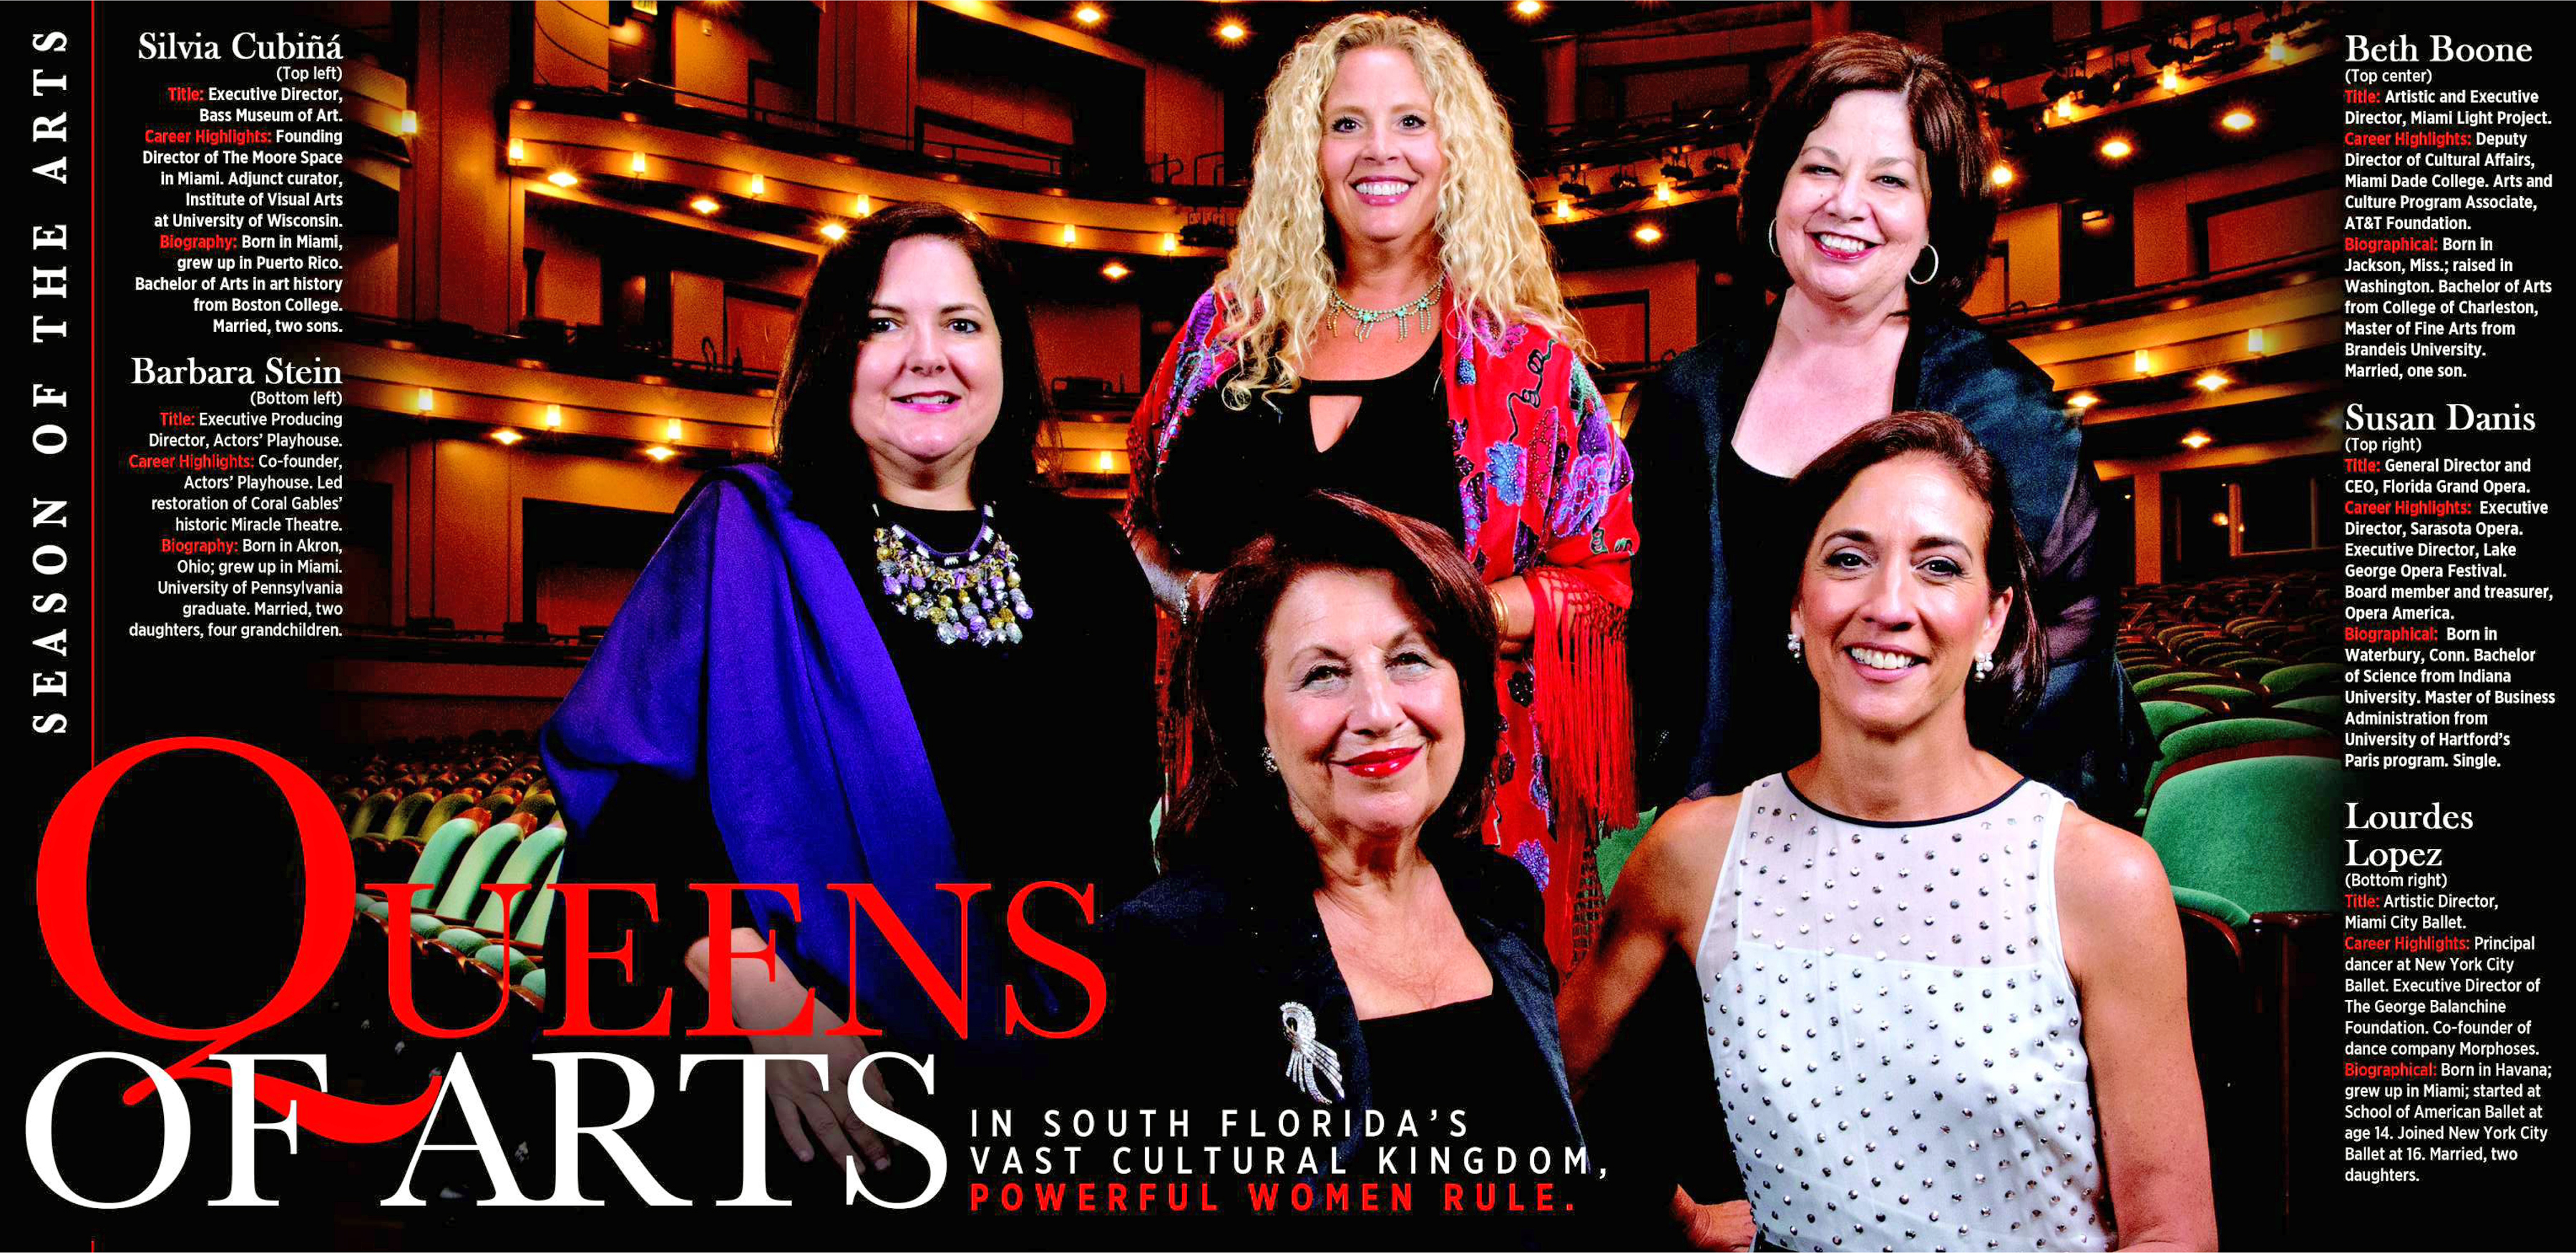 Original image run in the Miami Herald September 21, 2014.  Lourdes Lopez, the head of Miami City Ballet; Susan Danis, the head of Florida Grand Opera; Silvia Karman Cubina, head of the Bass Museum; Beth Boone, head of Miami Light Project; and Barbara Stein, executive director of Actors' Playhouse at the Ziff Ballet Opera House, Adrienne Arsht Center for the Performing Arts on Wednesday, August 27, 2014.  © Al Diaz / Miami Herald